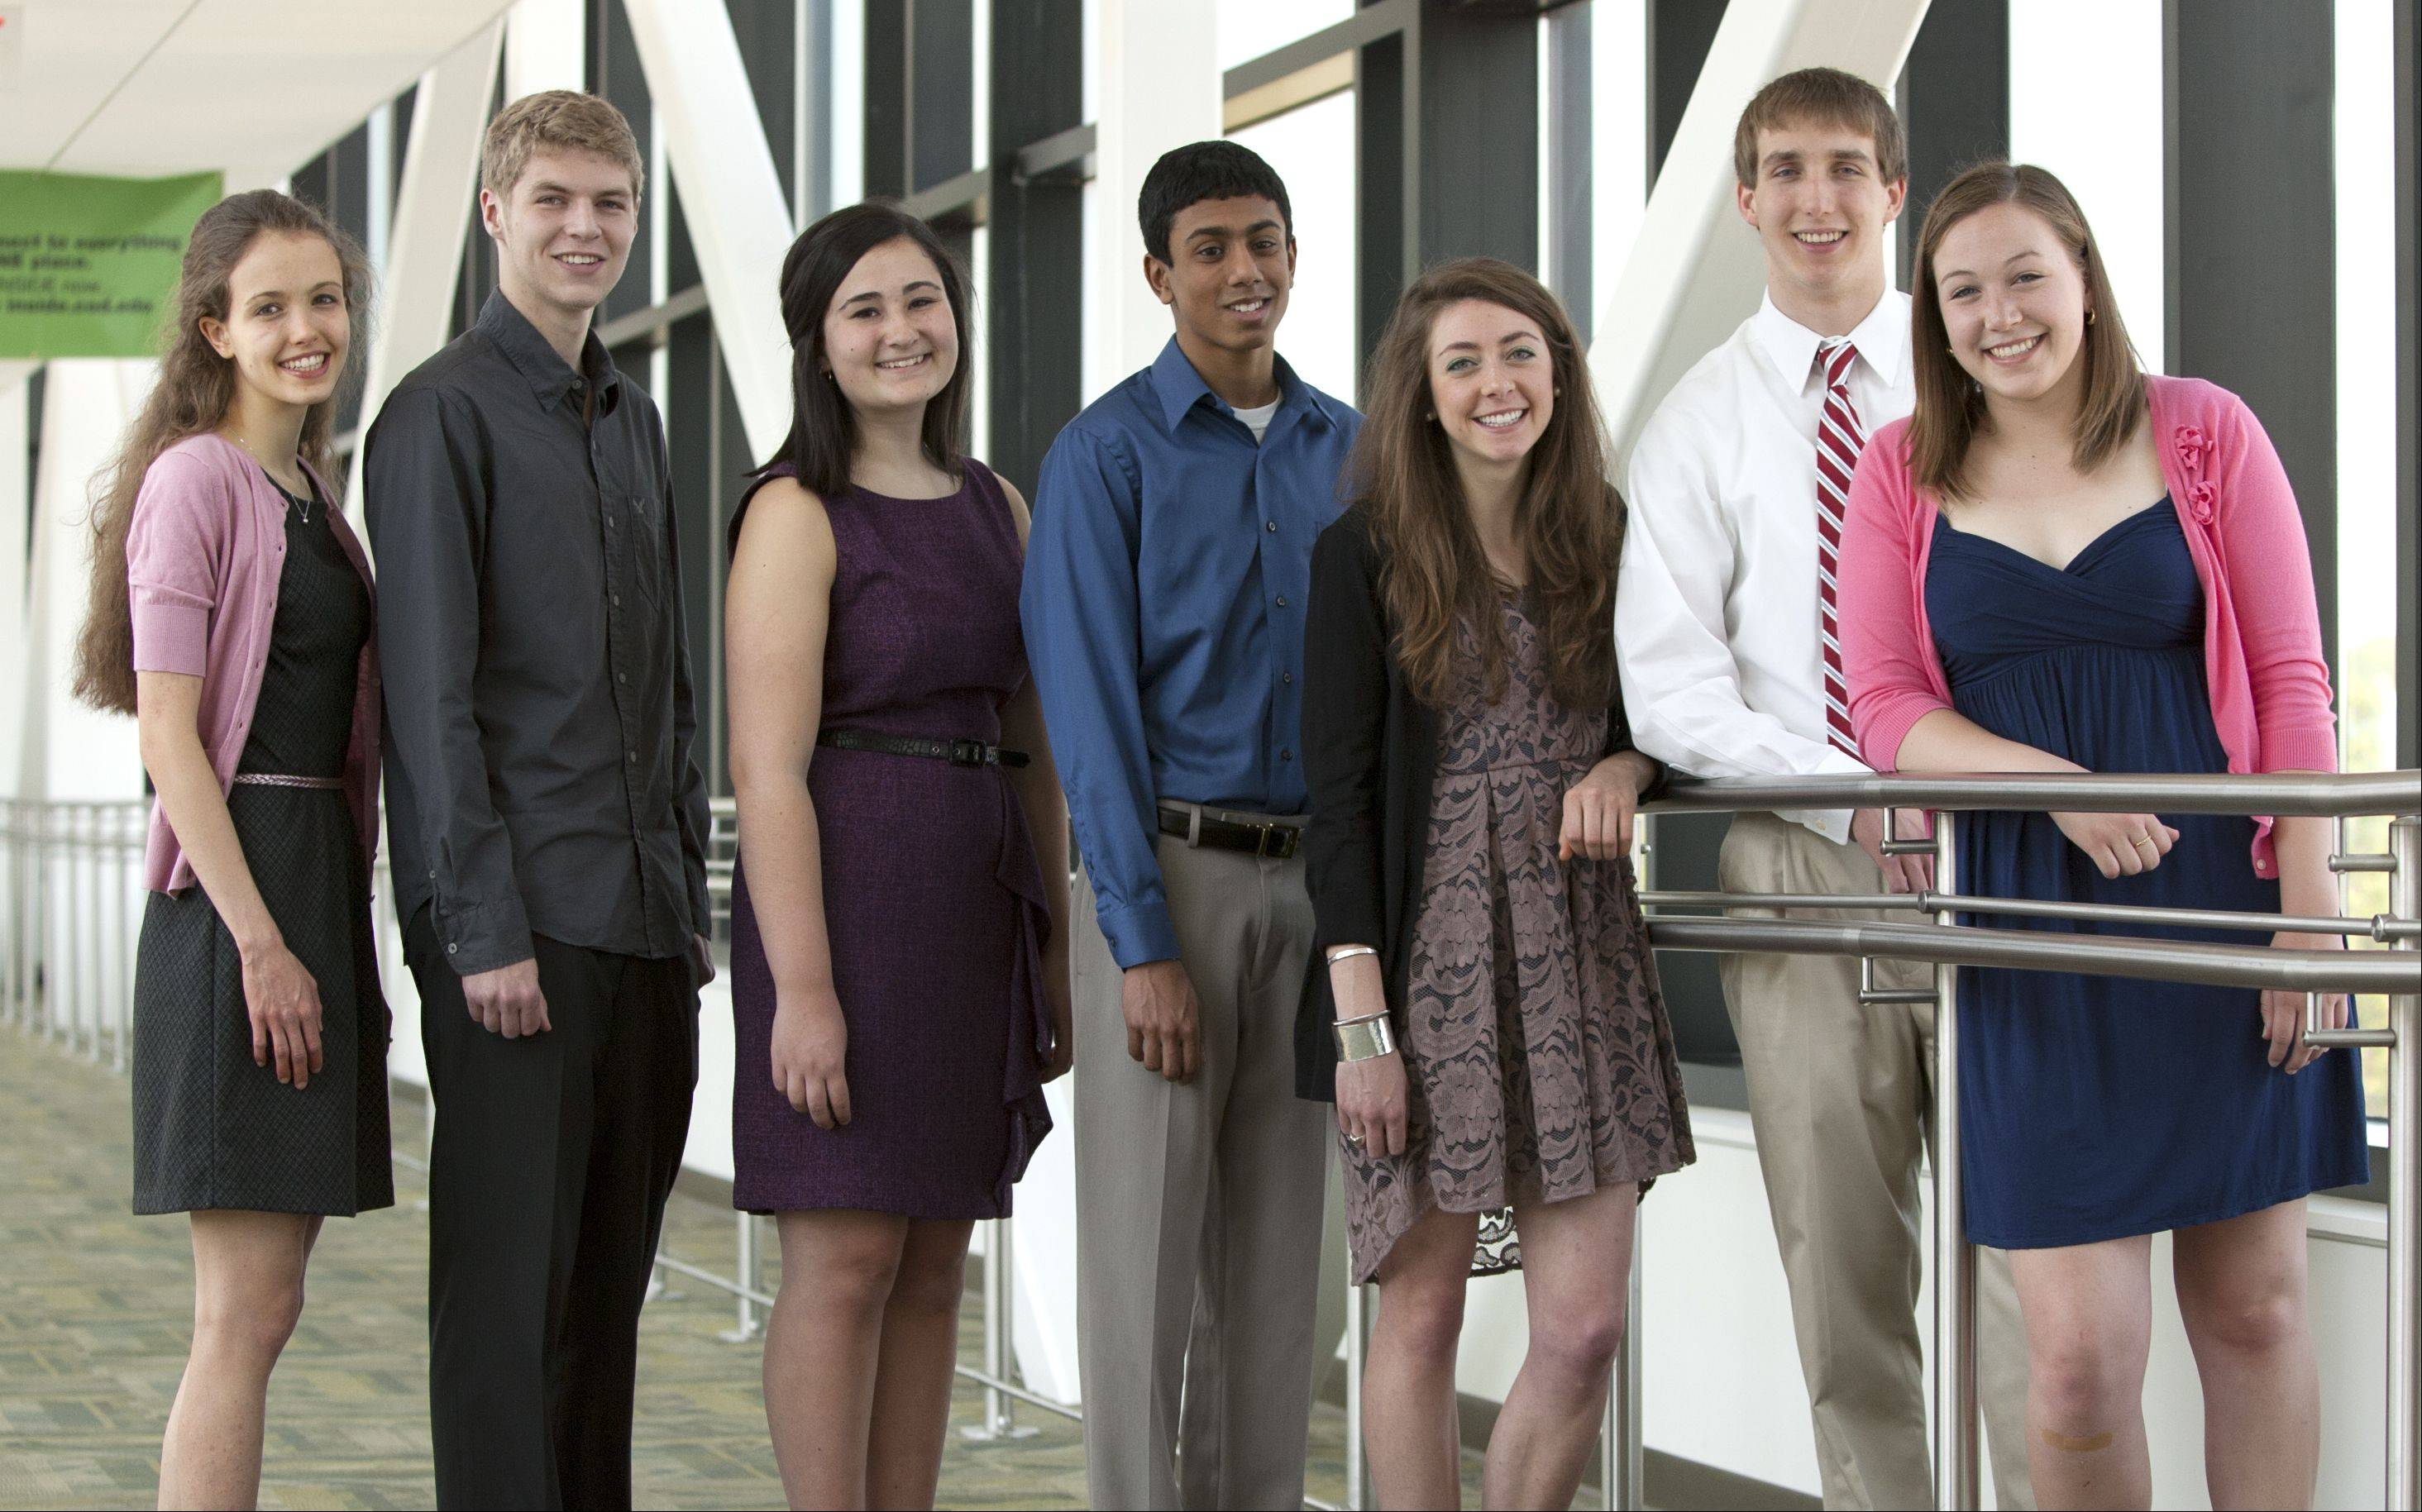 The 2011-12 DuPage County Academic Team gathers at College of DuPage. From left: Emily Riederer, Naperville North High School; Adam Alfredo Ball, Glenbard North High School; Mia Frasca, Wheaton Warrenville South High School; Ashvin Rai, Neuqua Valley High School; Katherine McDonnell, St. Francis High School; David Birkenheier, Naperville Central High School and Amy Hummel, Wheaton North High School. Not pictured: Mohammed S. Fahad, College Preparatory School of America; Rebecca Lewis, Hinsdale Central High School; Zamaan Sohel, Lake Park High School.